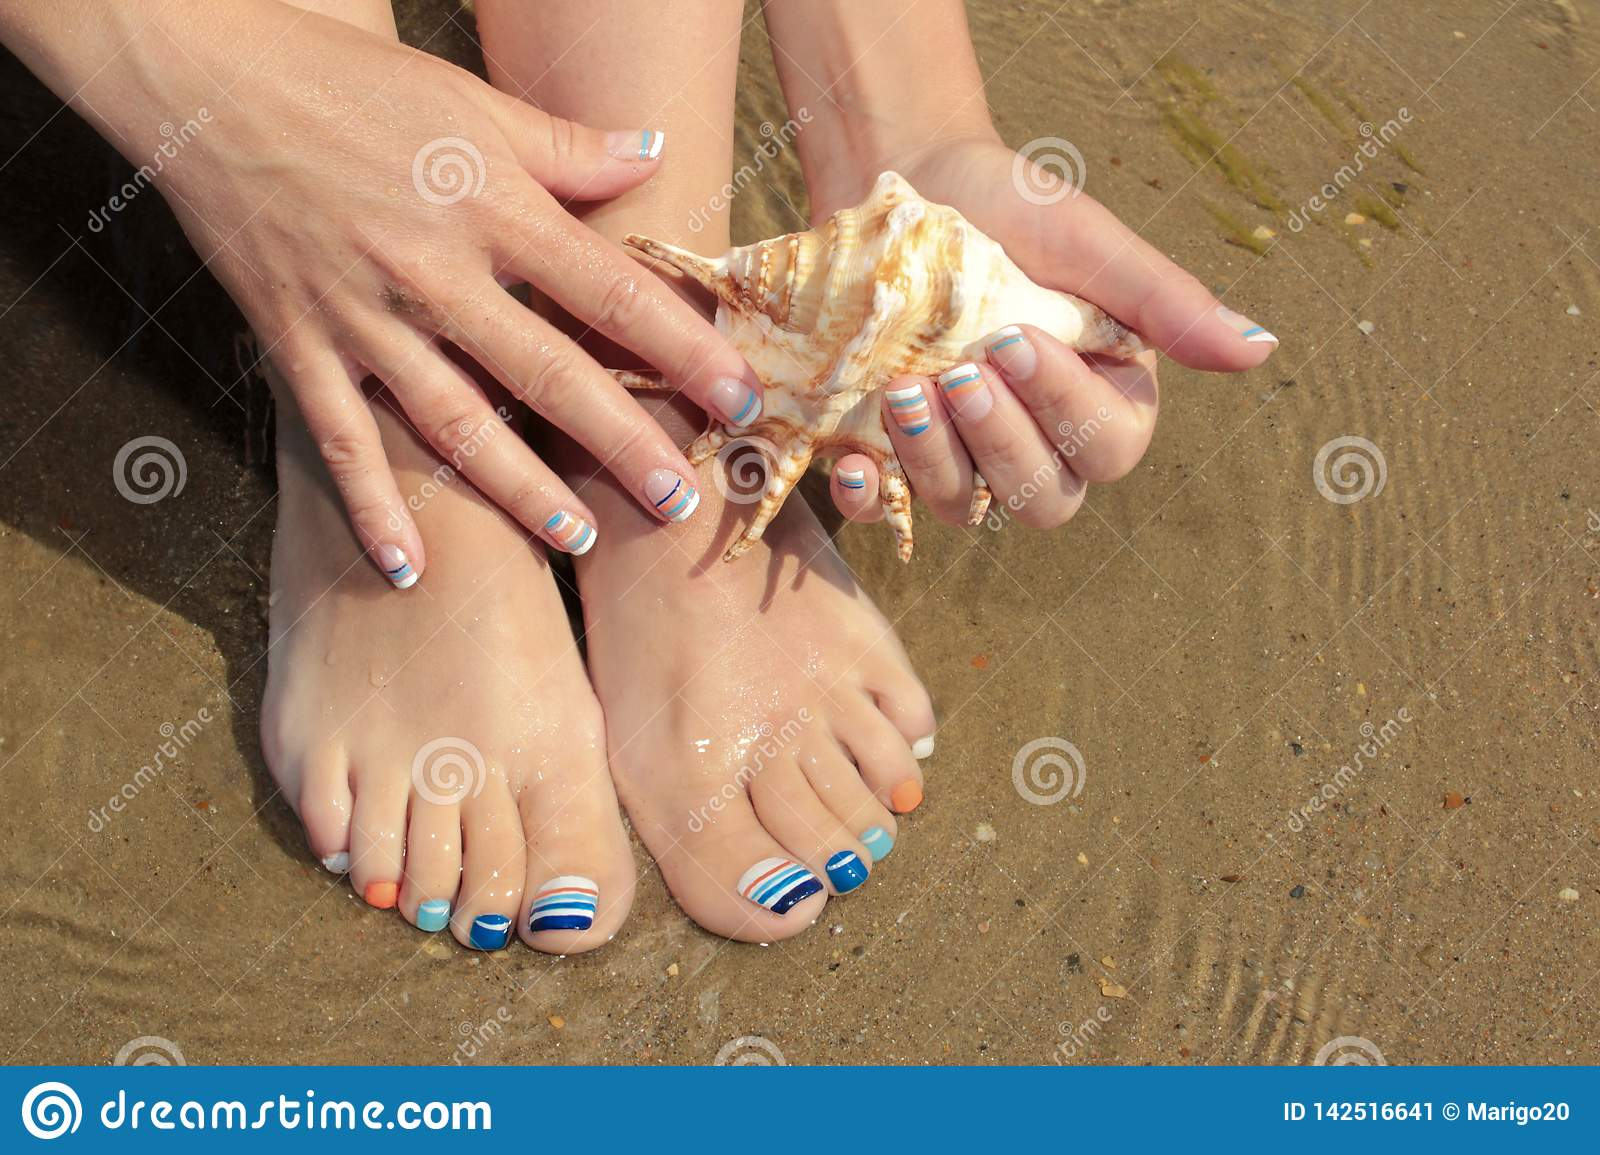 Marine French Manicure And Pedicure With Blue And Orange Stripes